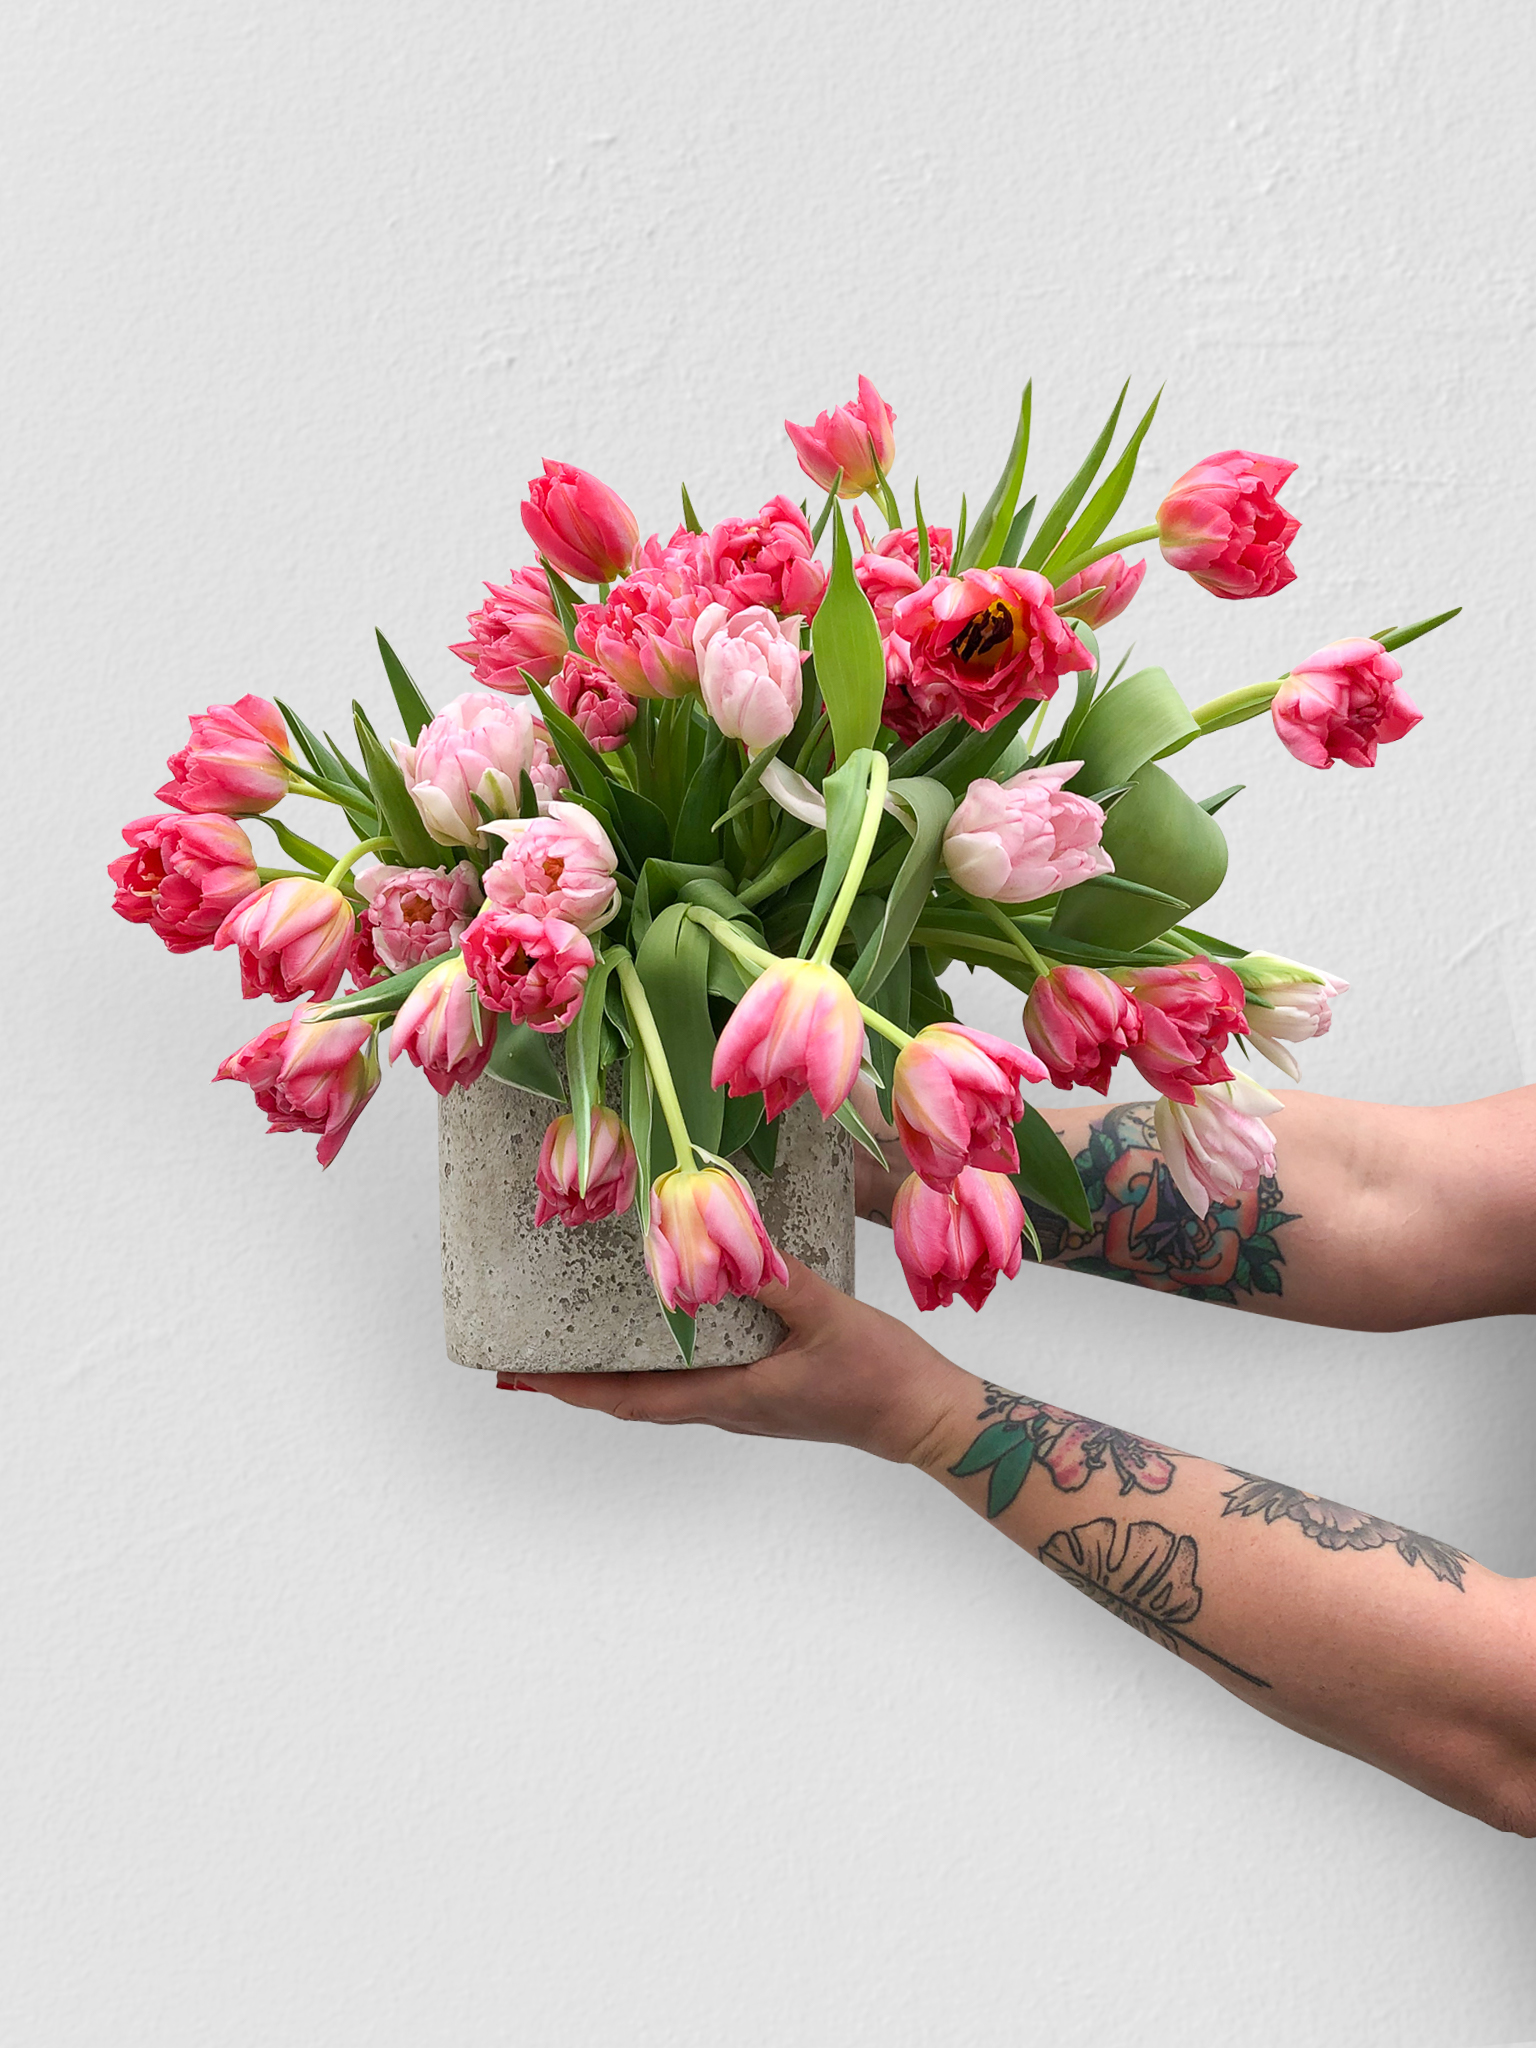 Through The Simple Task Of Arranging Three Bunches Pink Parfait Peonies Lara Suddenly Noticed Her Hectic Anxious Mind Had Been Silenced And She